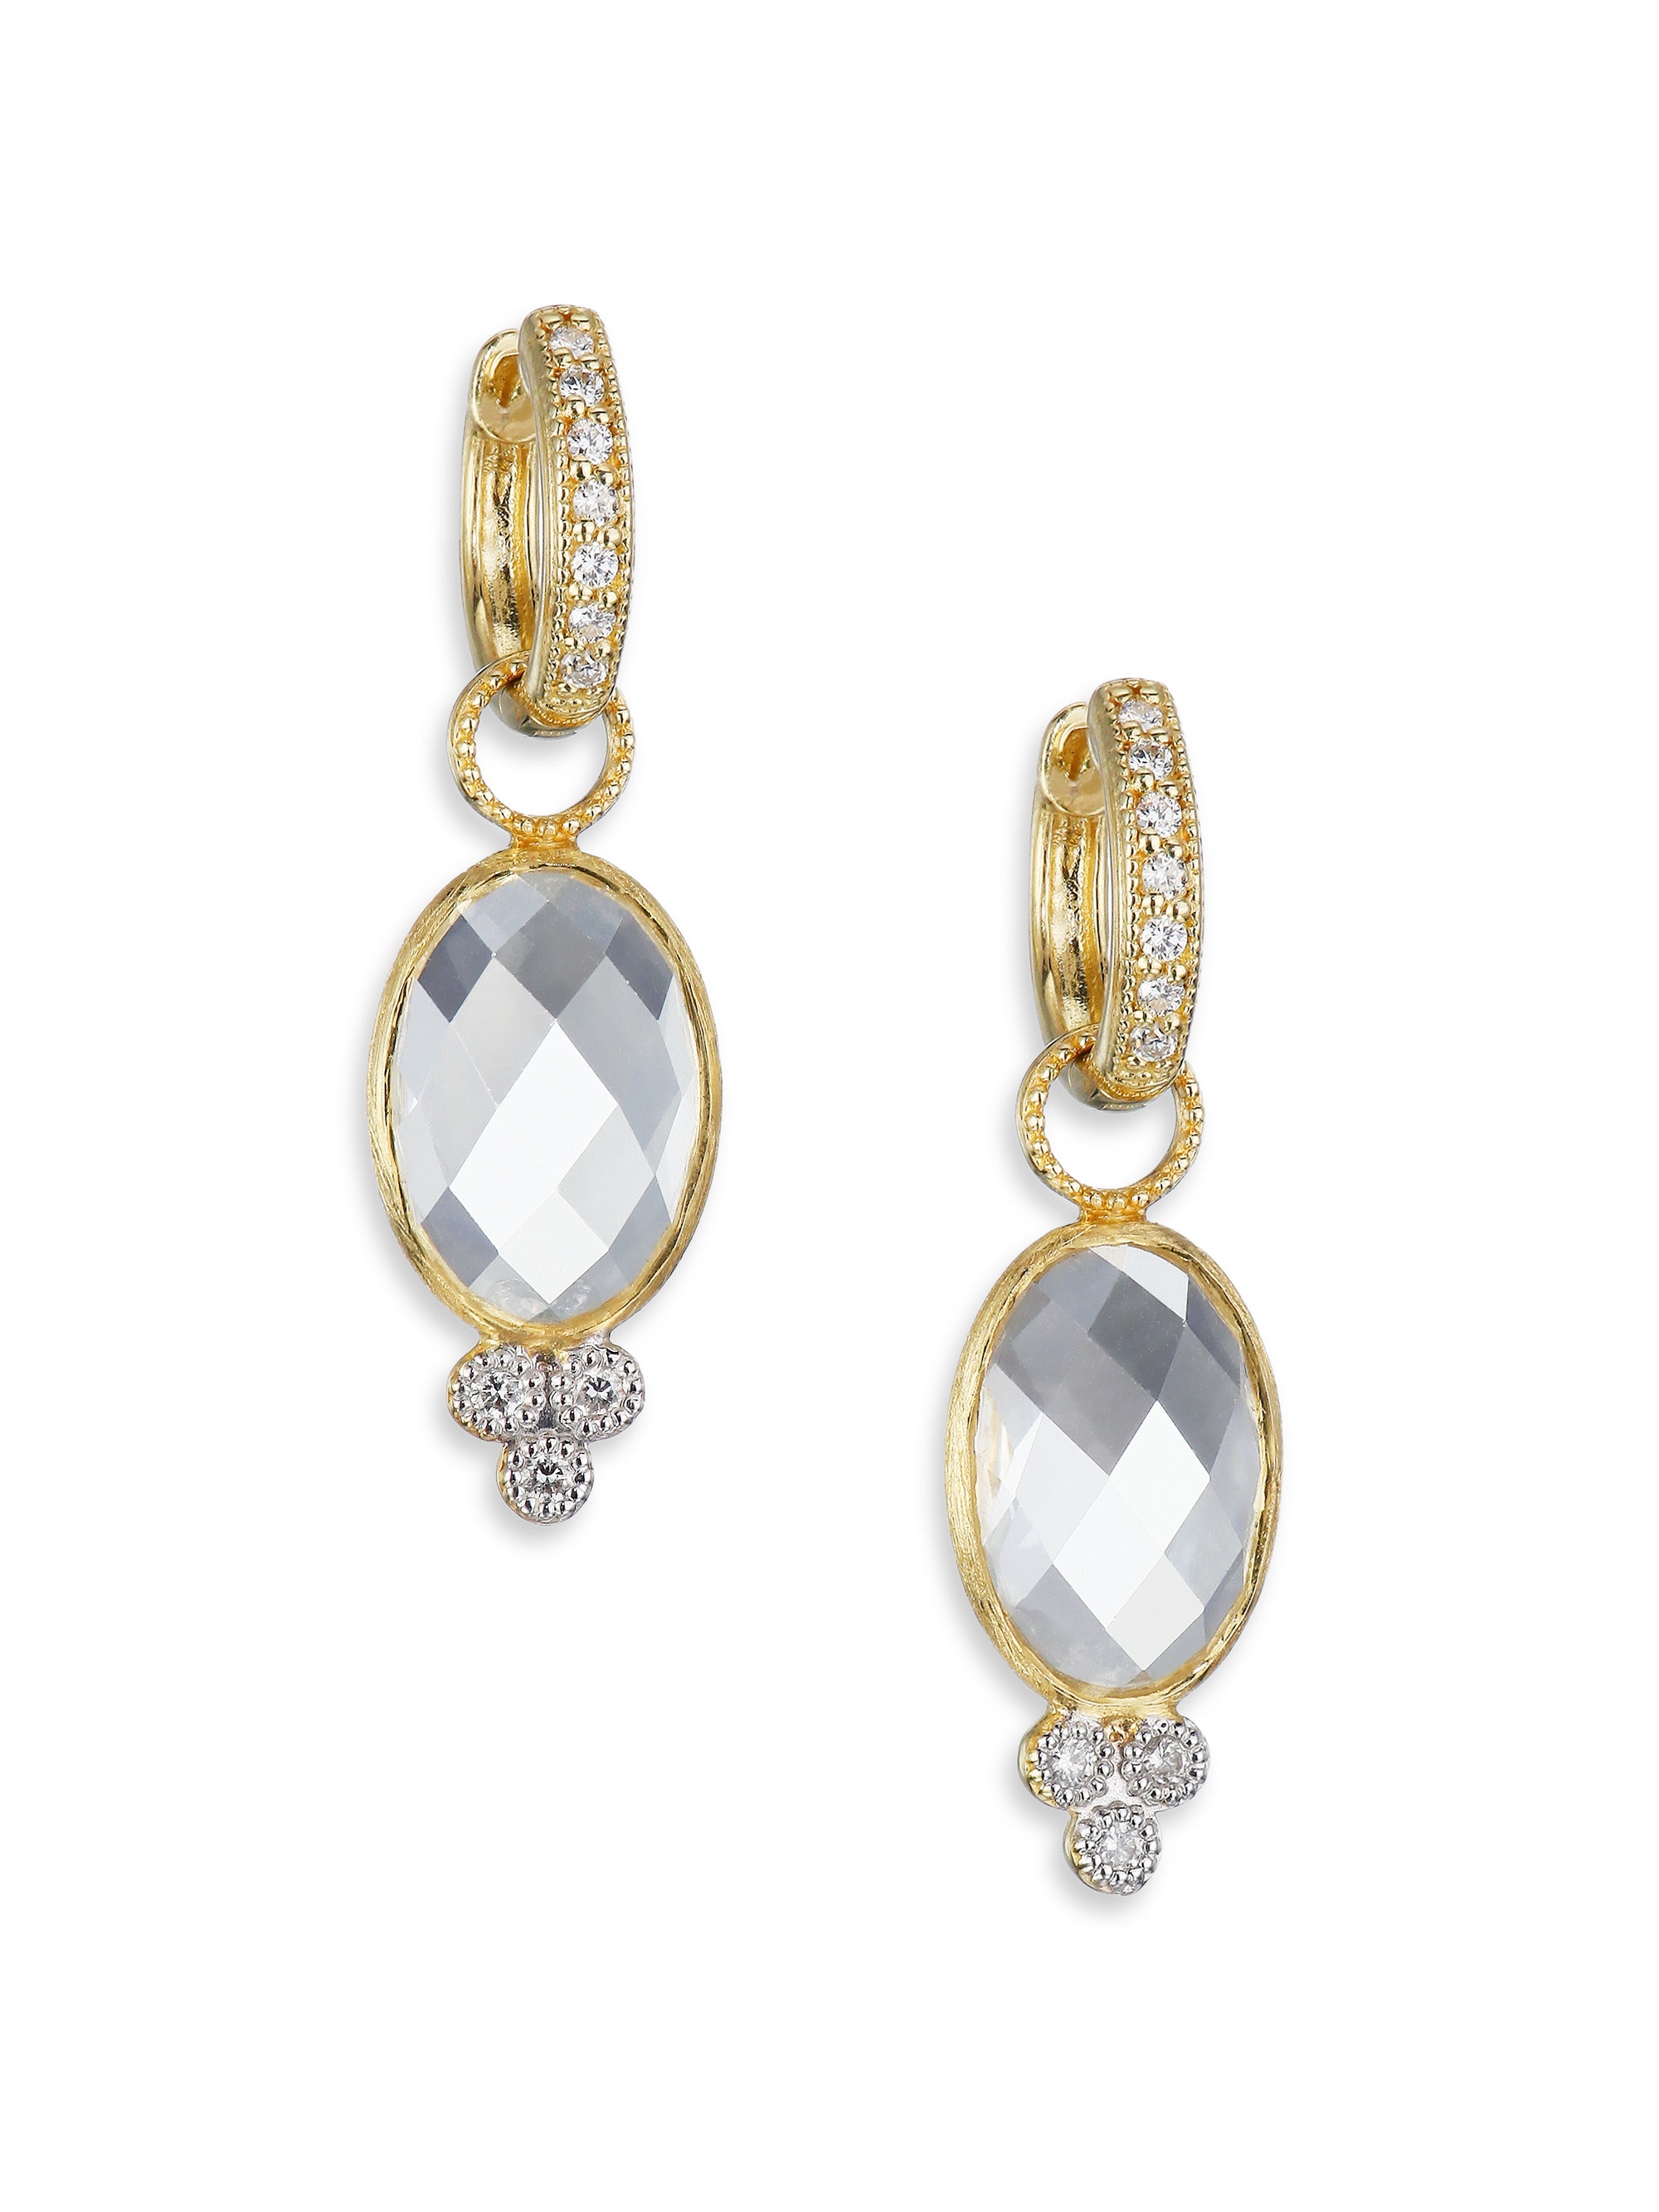 Jude Frances Provence White Topaz & Diamond Earring Charms